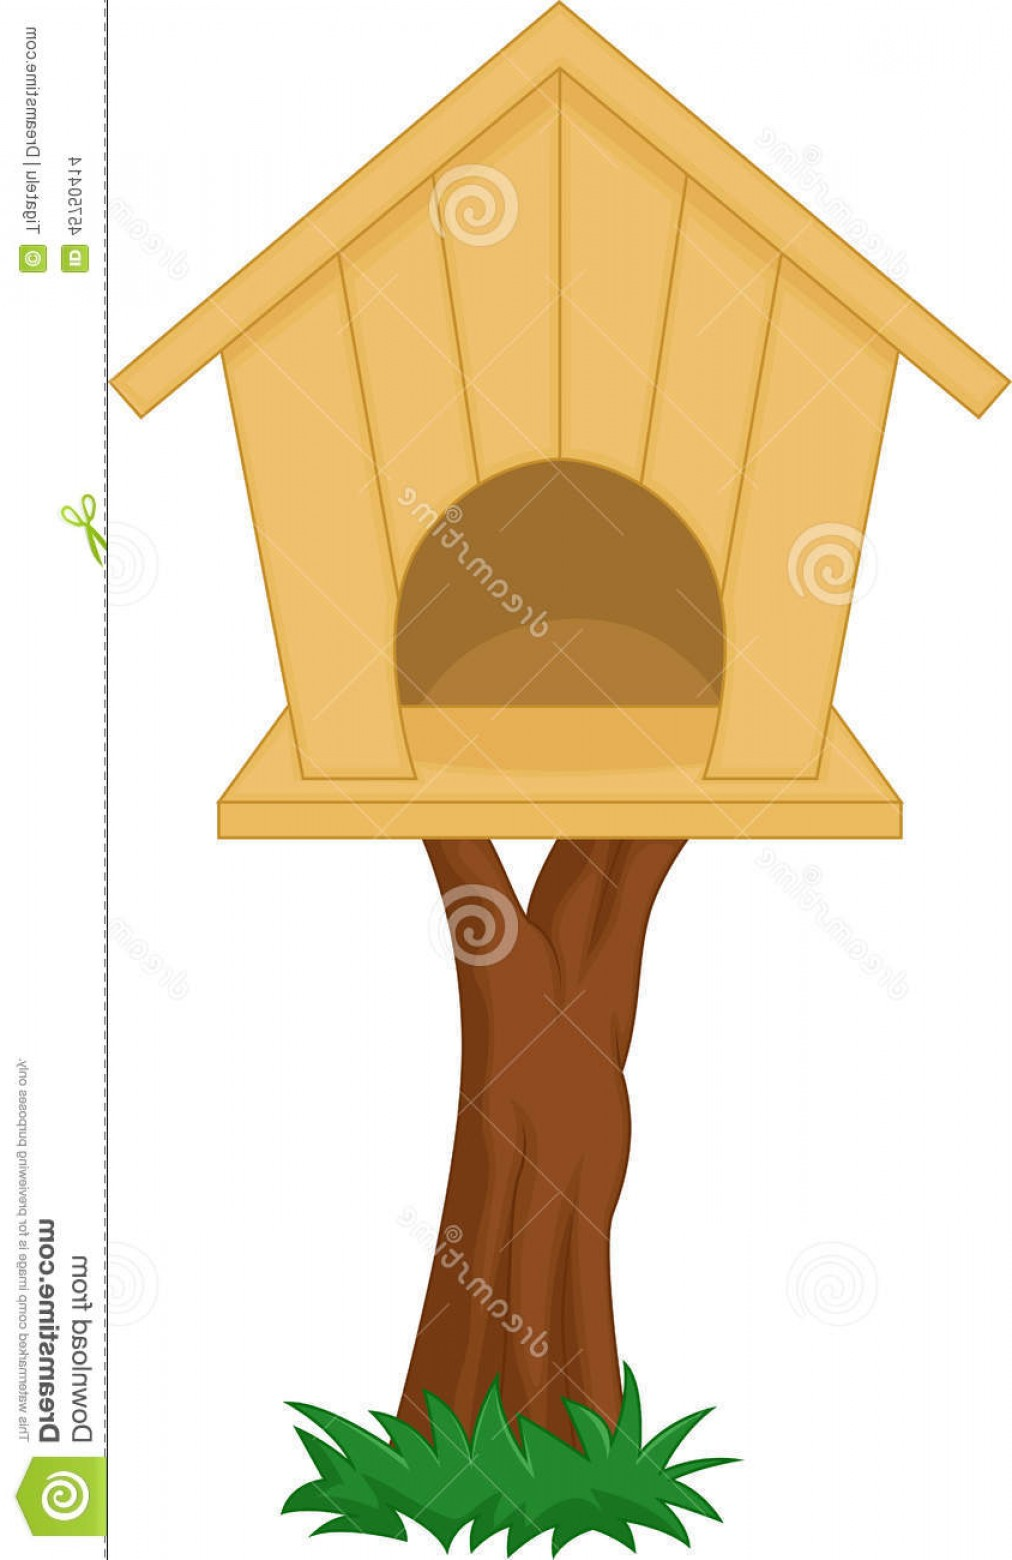 Vector Bird House: Stock Illustration Bird House Cartoon Illustration Image